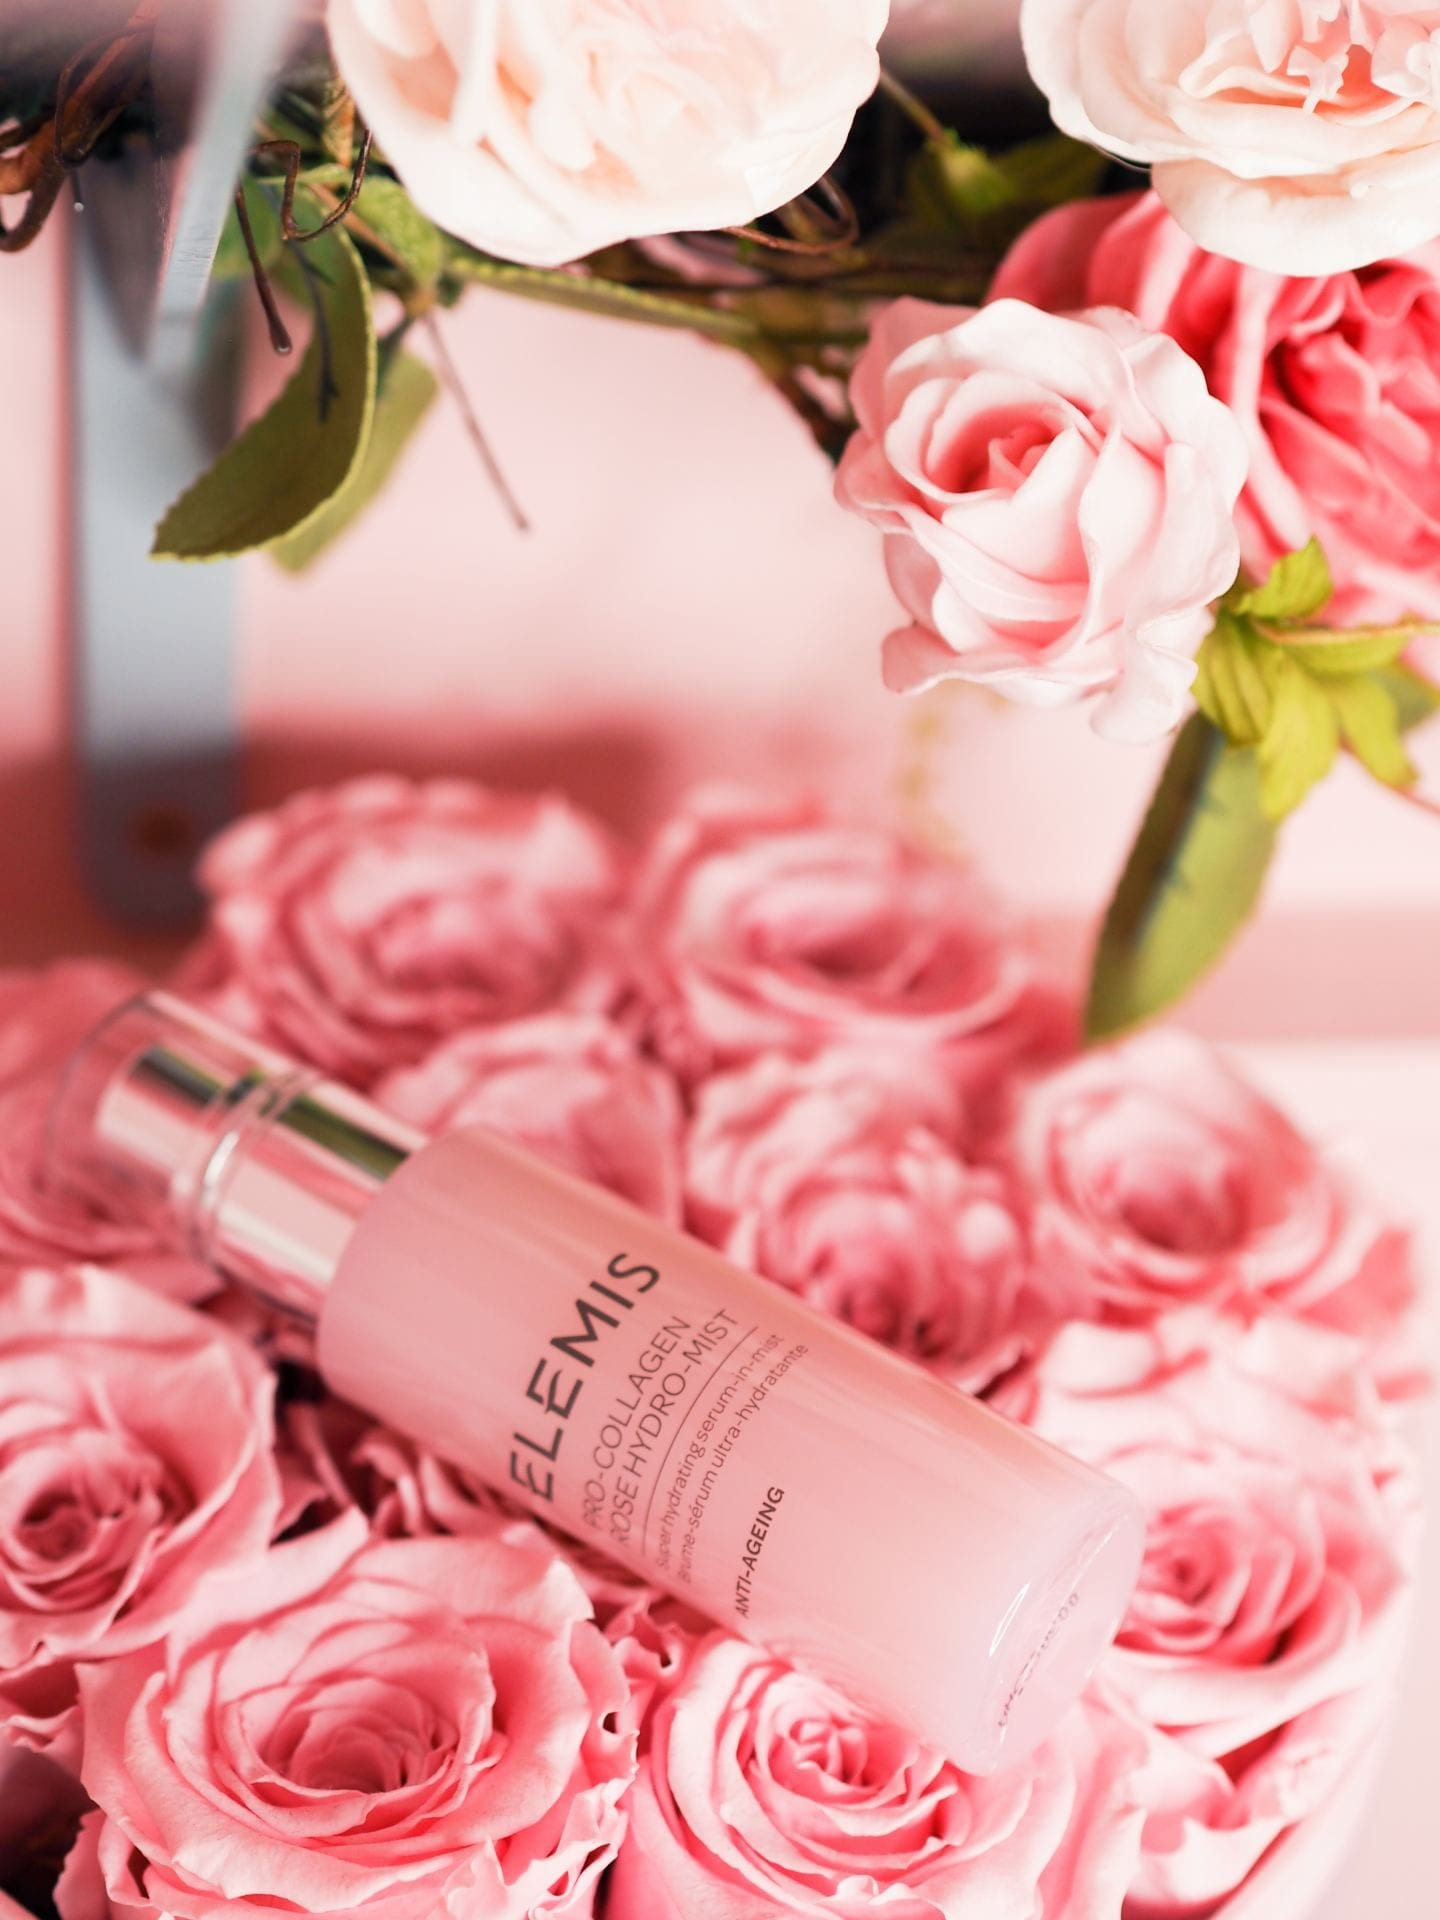 Katie Jane Hughes' Shares Her Top Tips For Creating Perfectly Glossy Skin rose face oil elemis rose facial mist